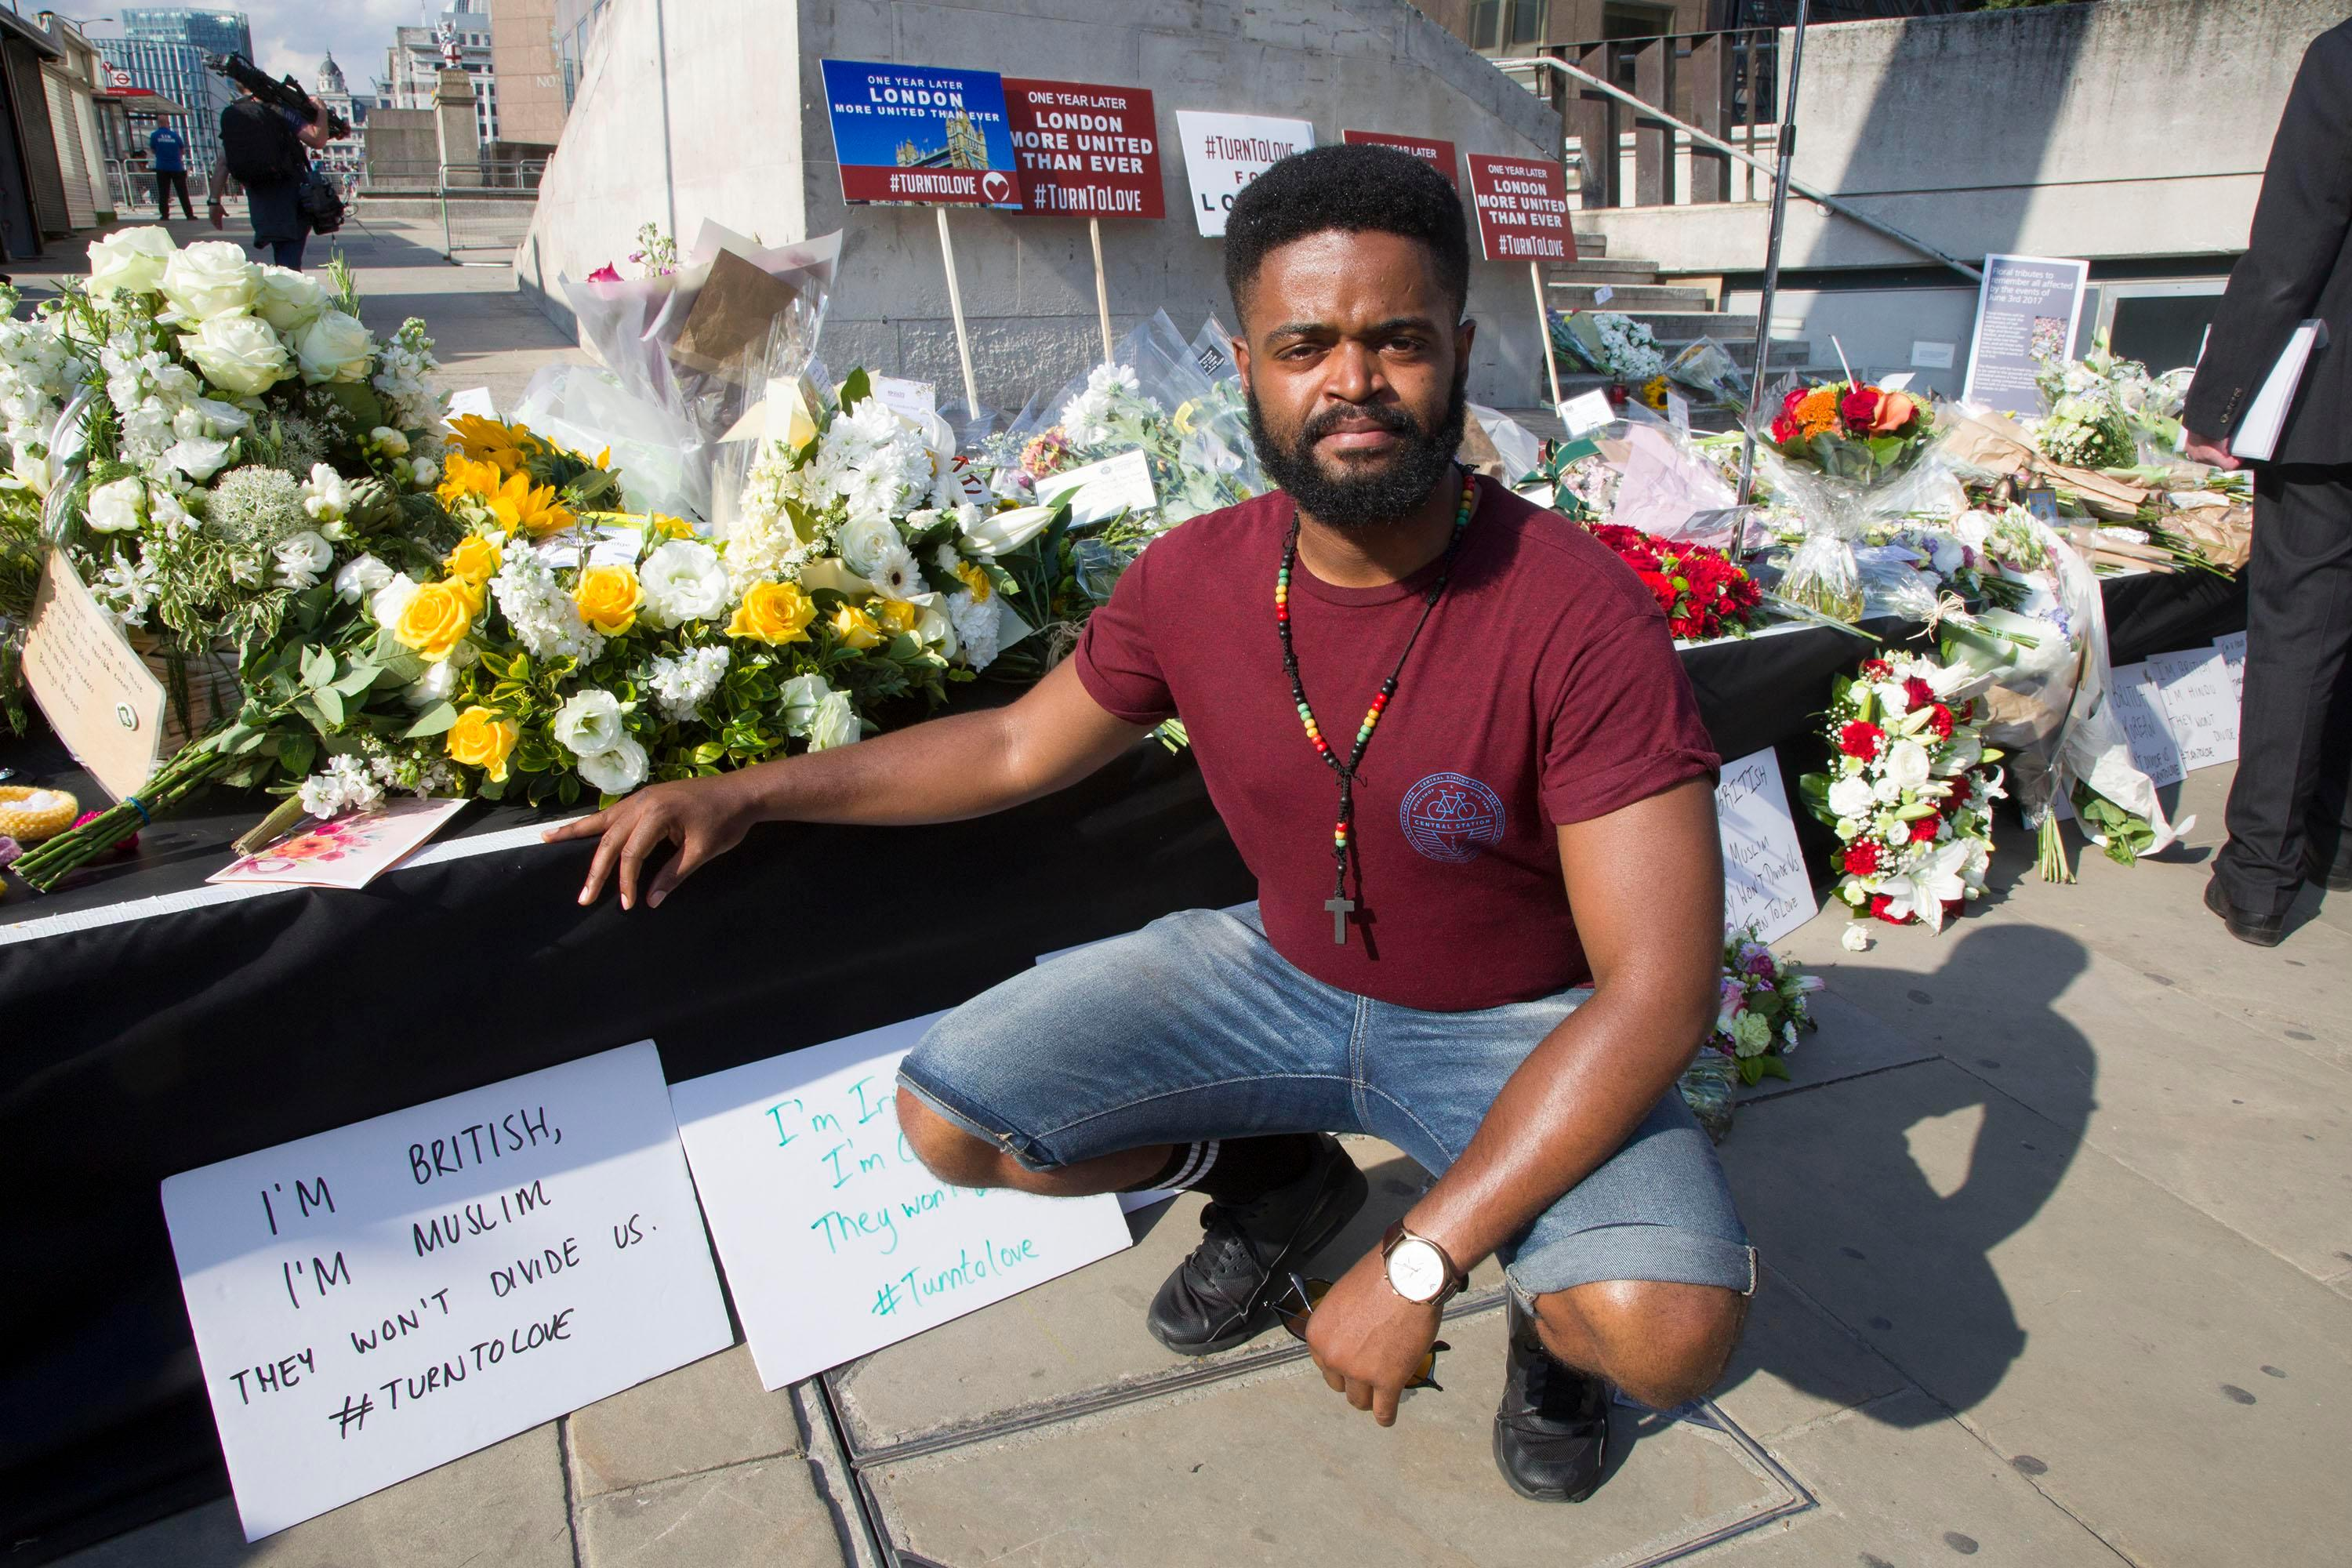 London Bridge hero wants to be reunited with wounded German tourist he helped after she was knocked 9ft in the air by terrorists' van